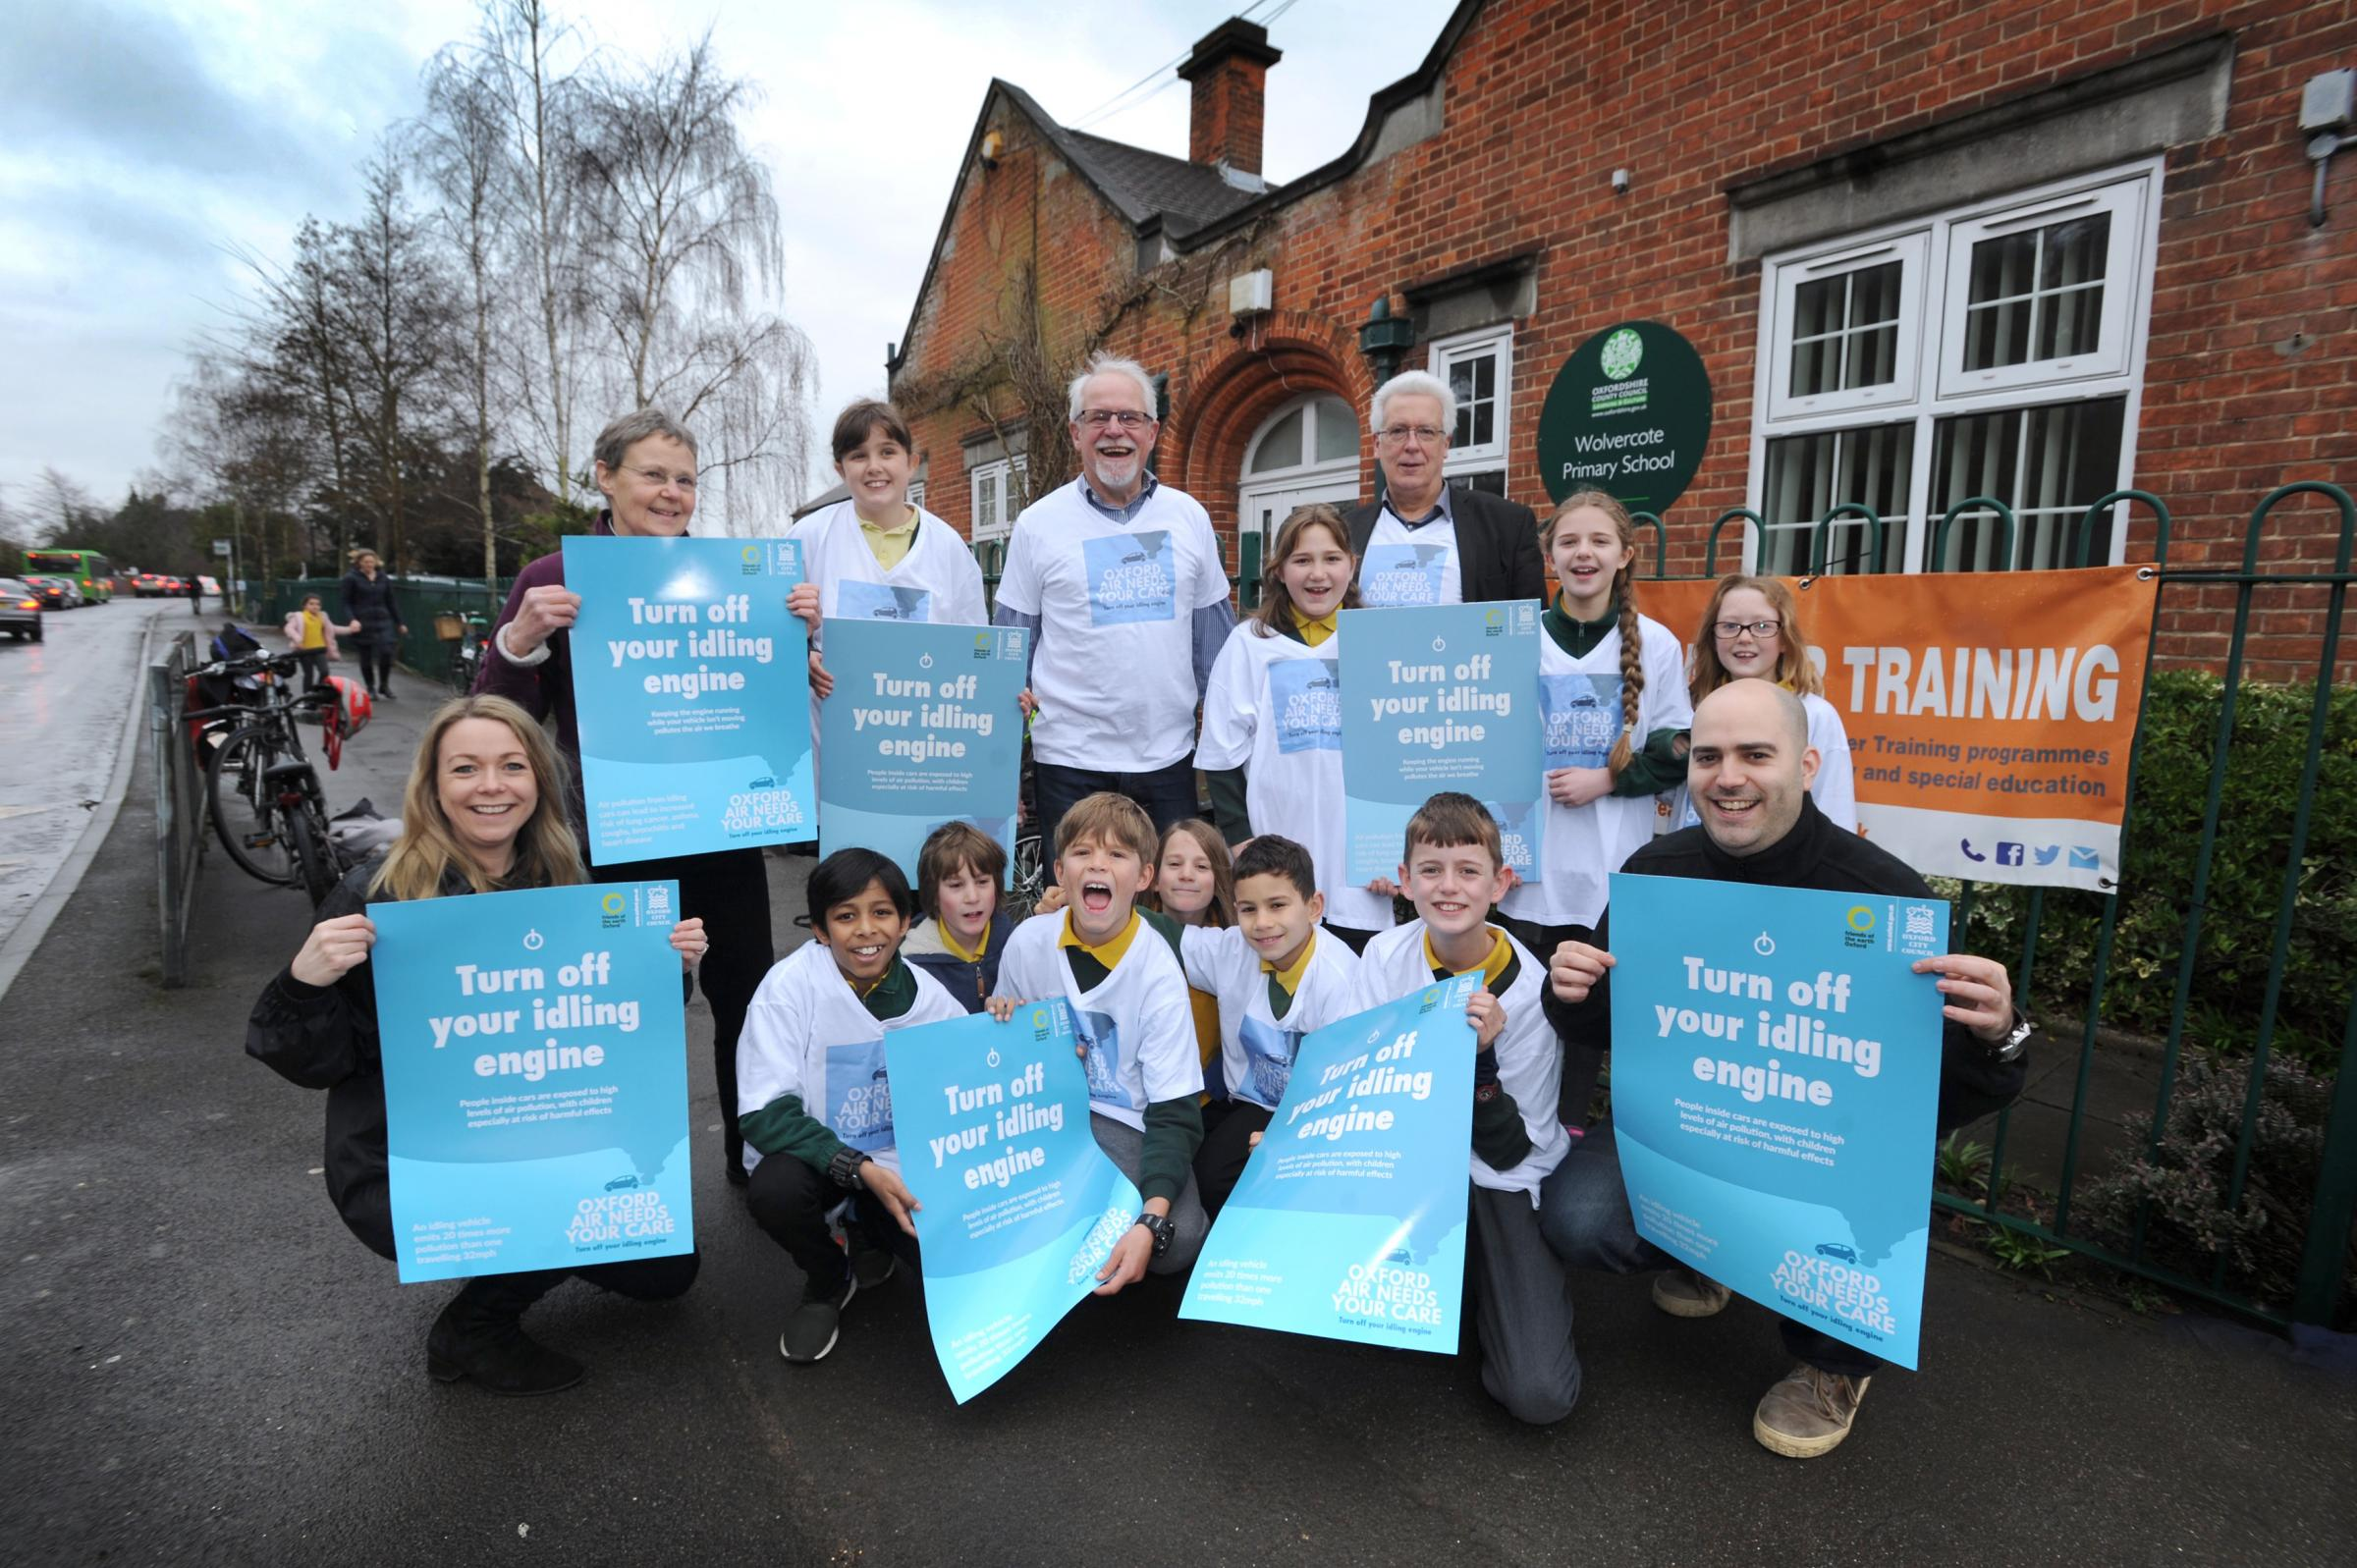 Oxford City Council and Oxford Friends of the Earth got together with the young members of Wolvercote Primary School's Eco Club to launch their Anti-Idling Campaign, encouraging school run parents to turn their engines off while they drop off and pick